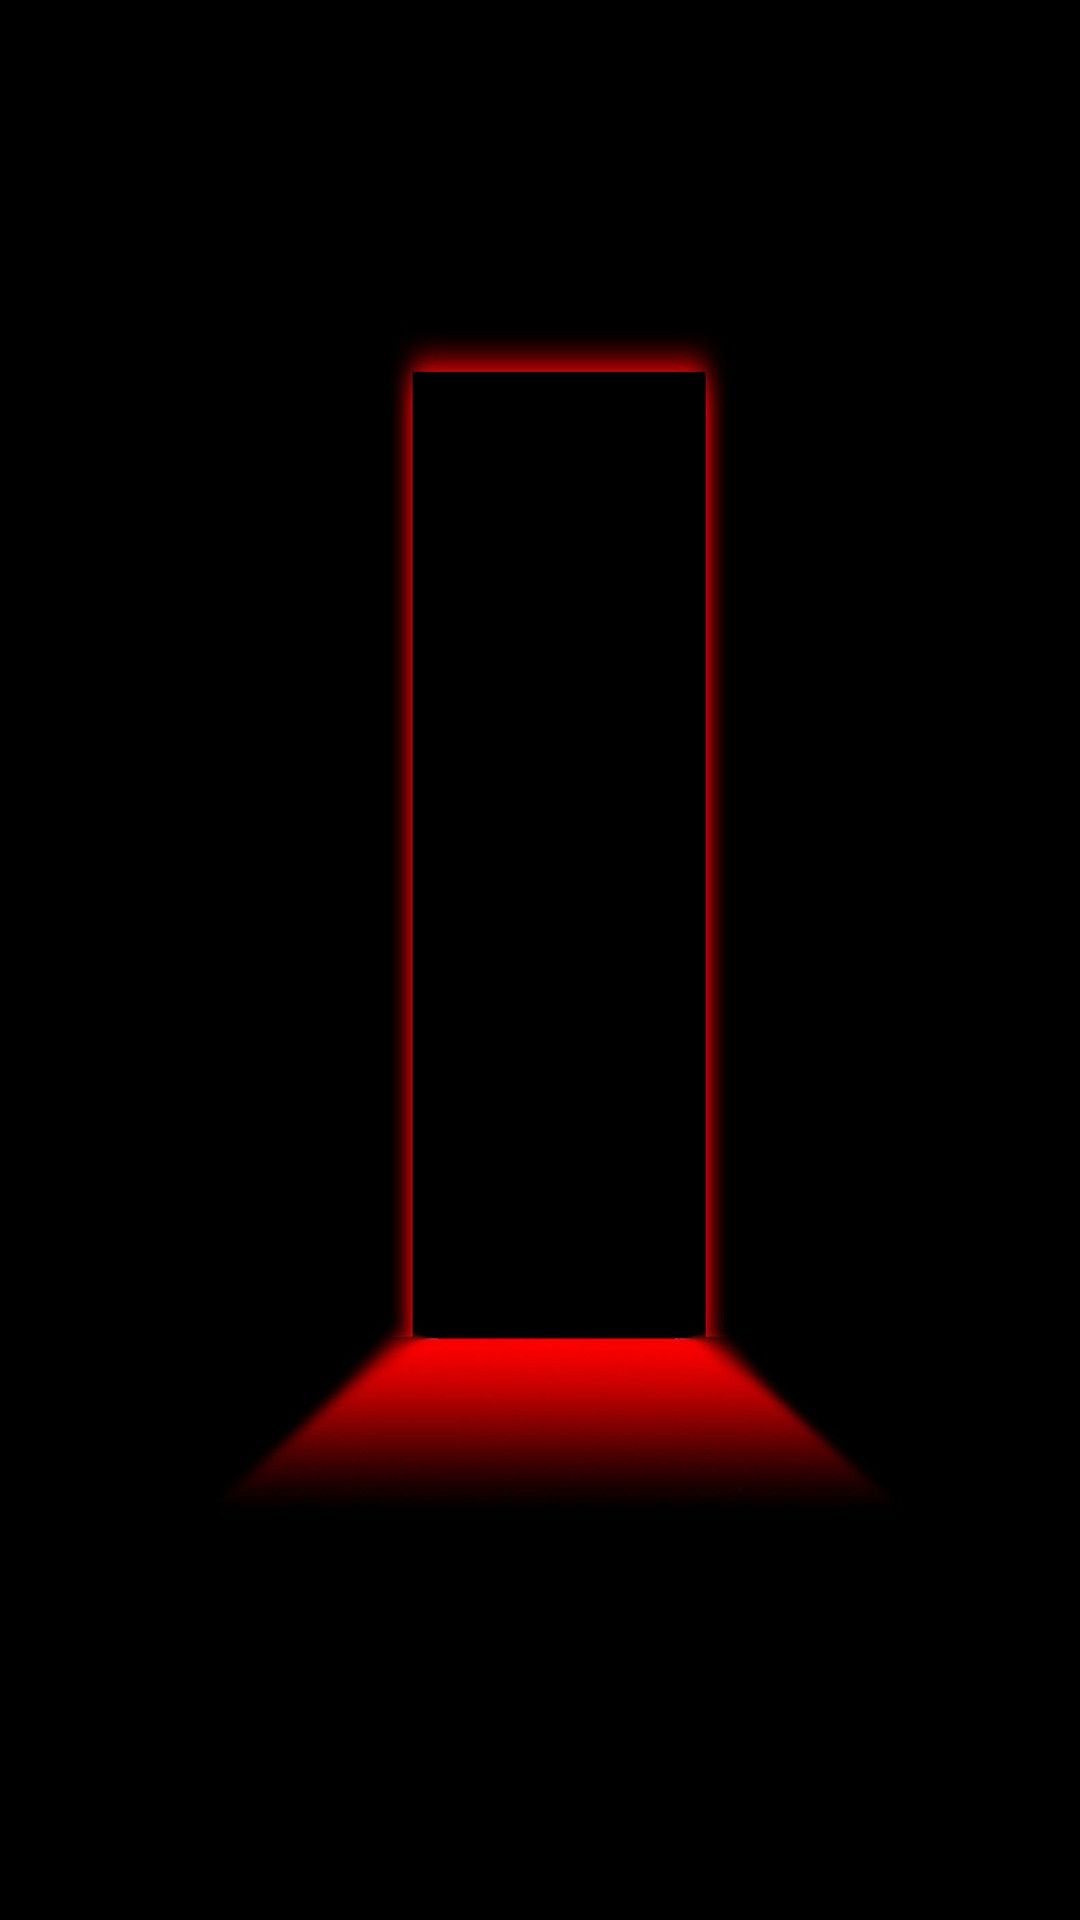 3D Black and Red iPhone Wallpaper Black wallpaper iphone